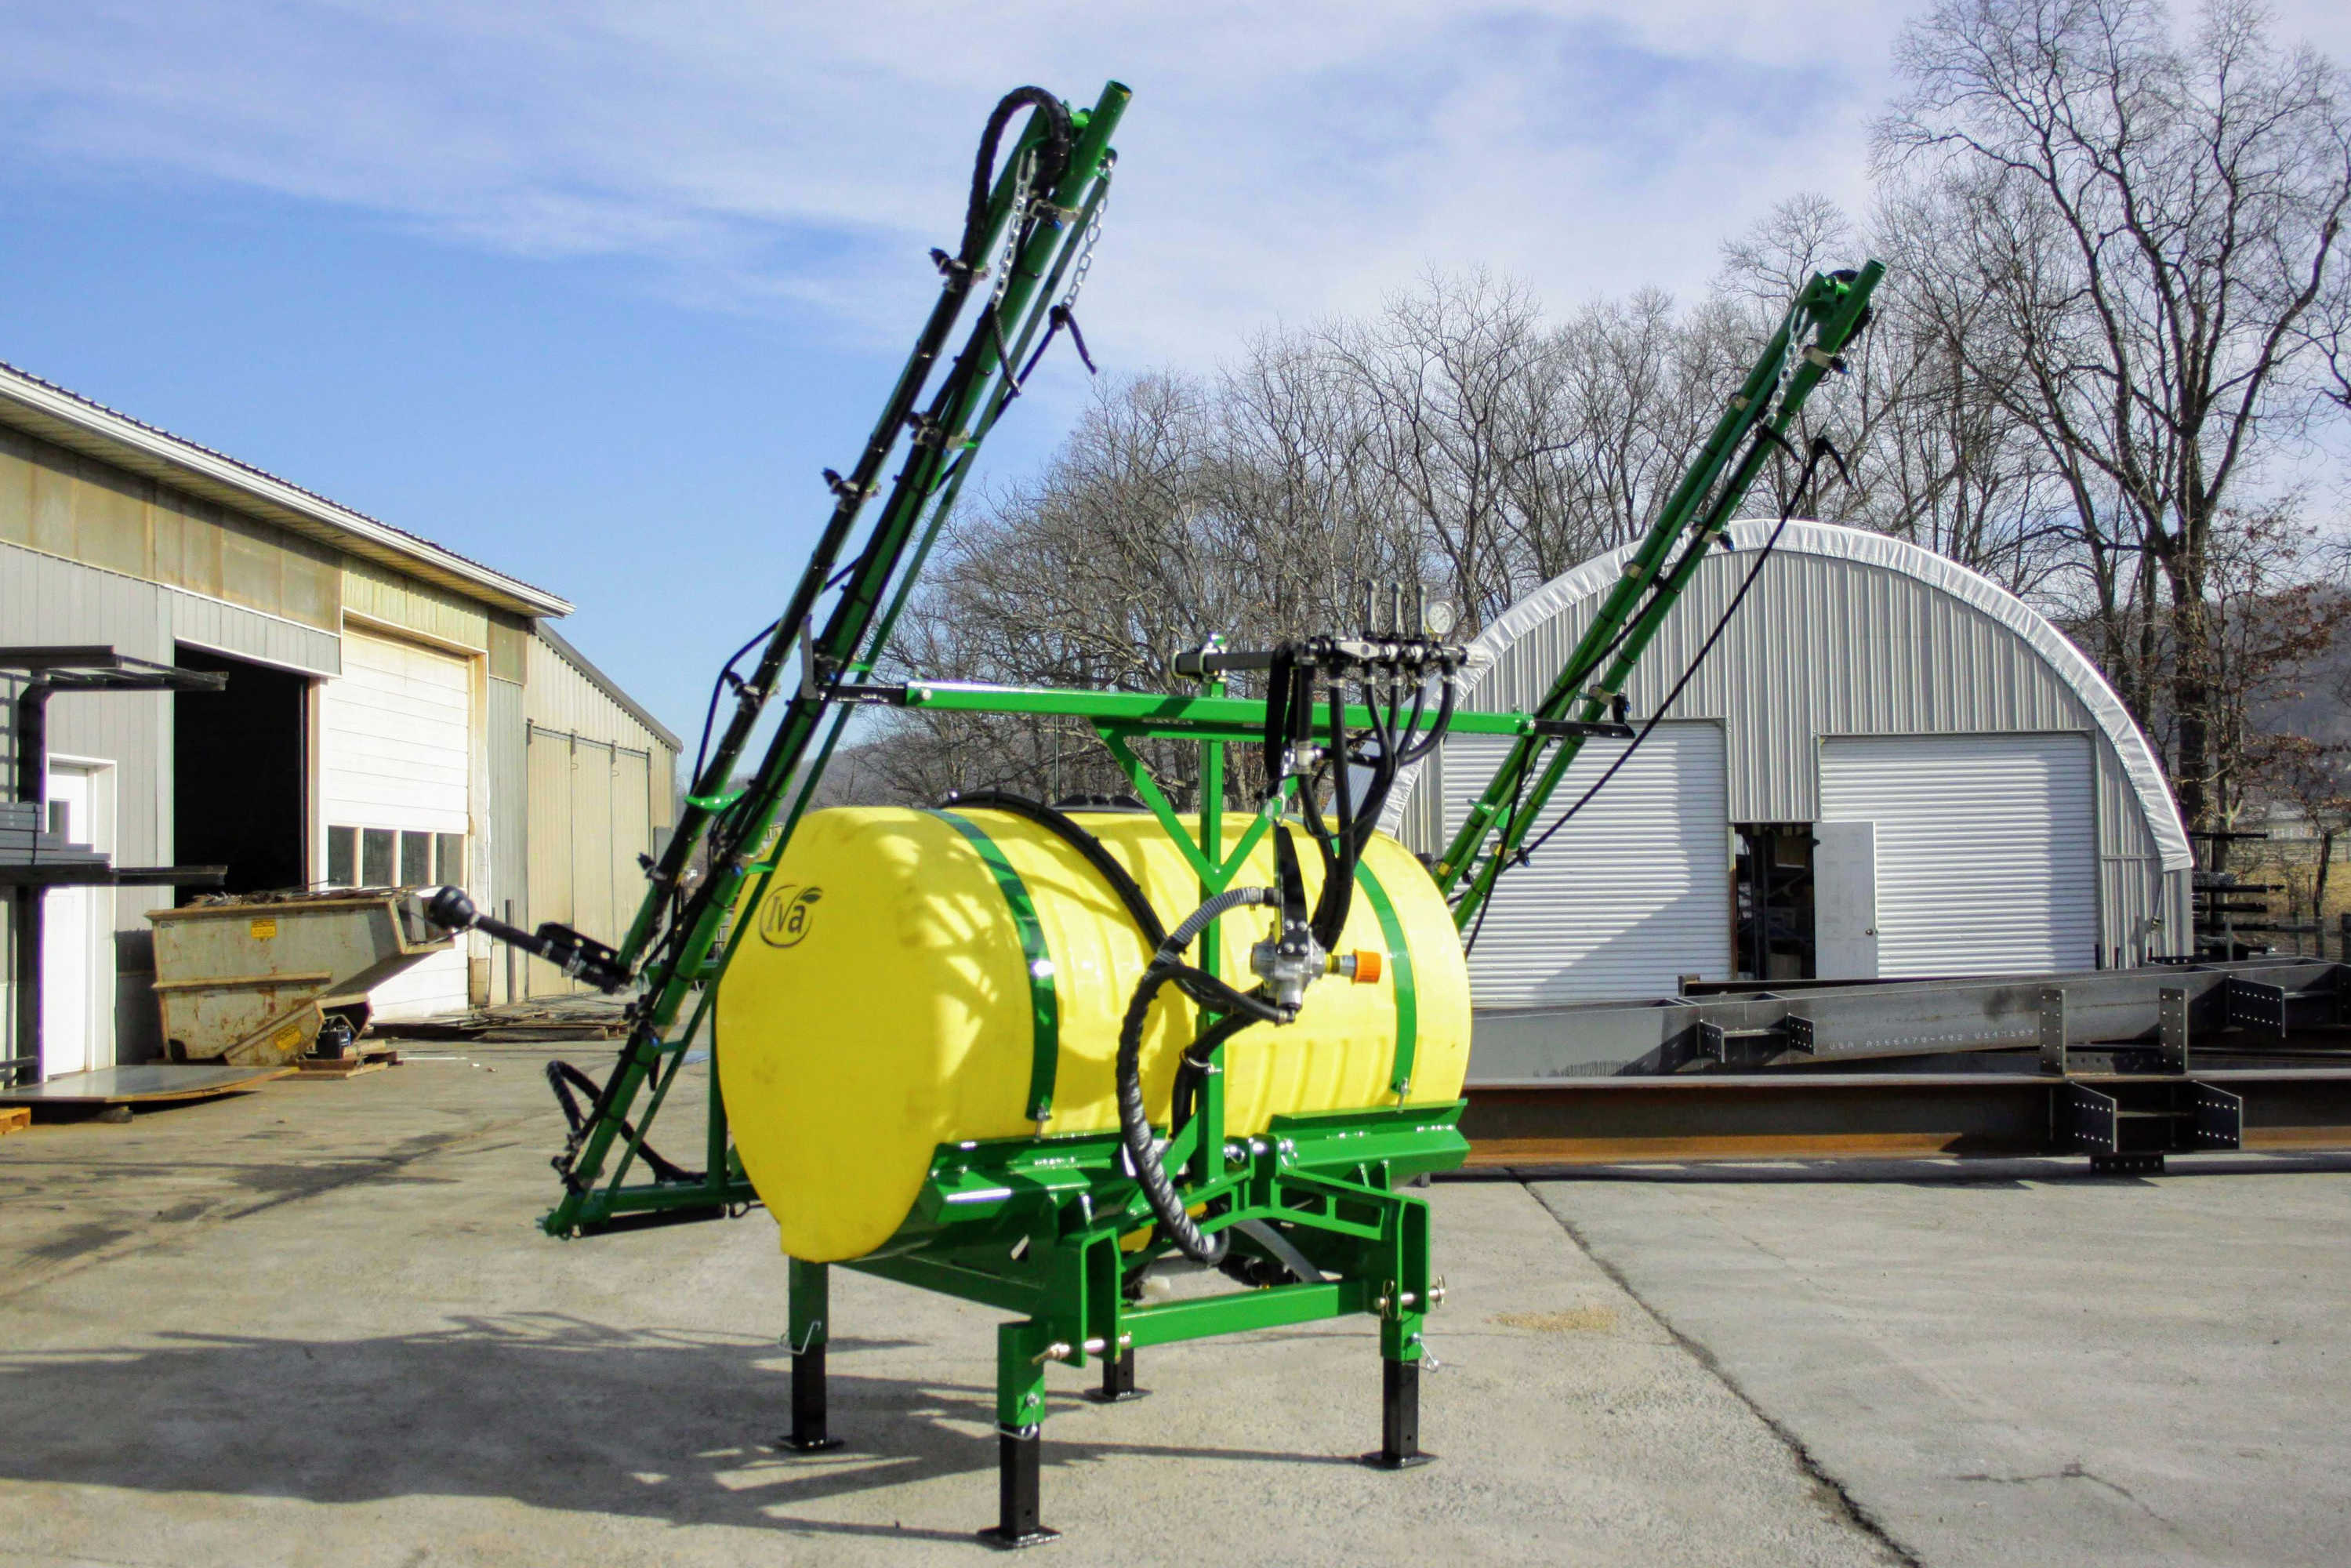 300 gallon 3-point Hitch Sprayer with 30' manual-fold booms